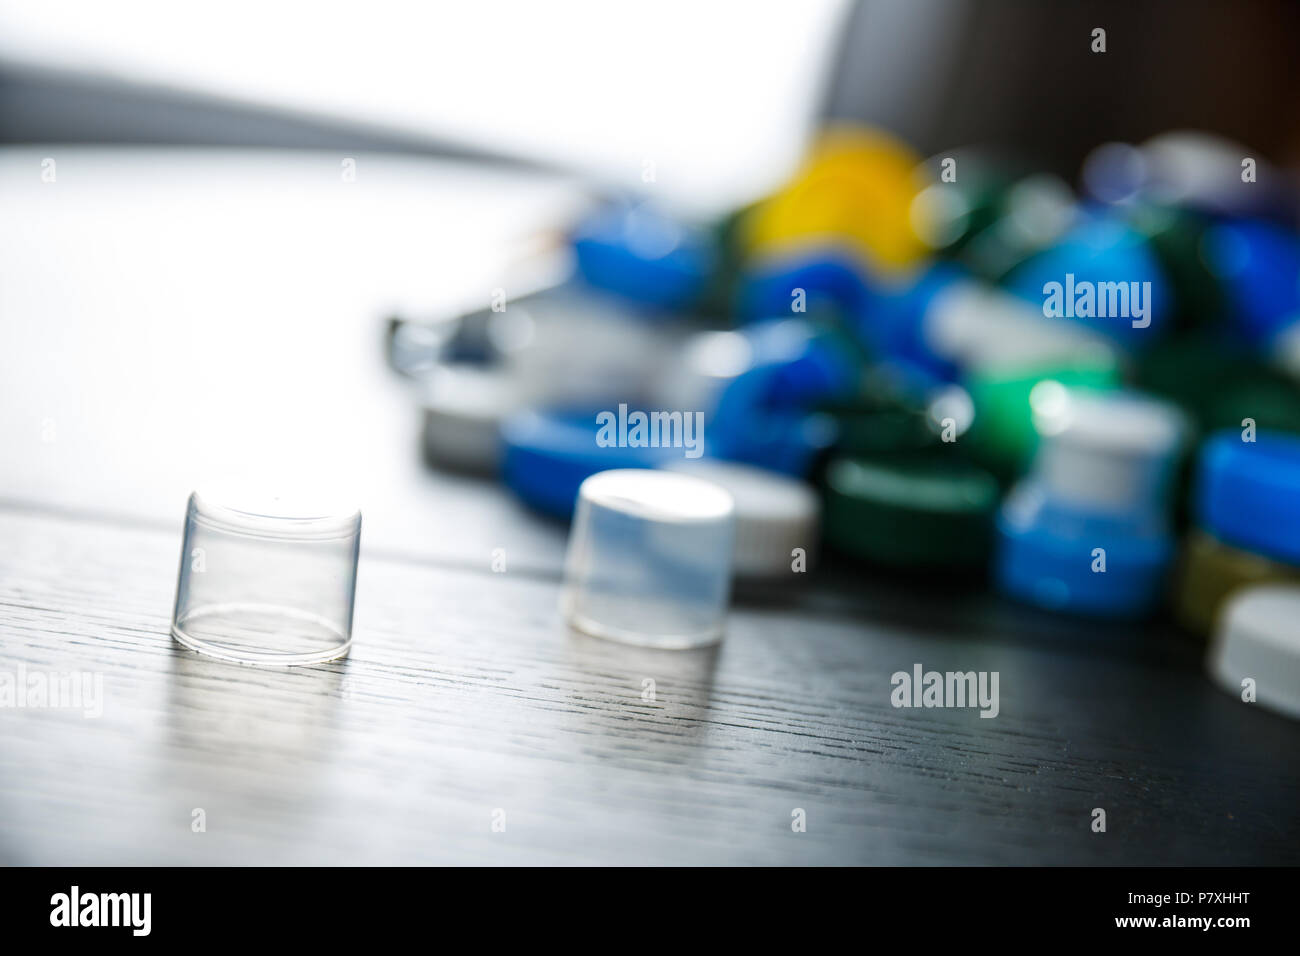 Collection of various colorful plastic screw caps - Stock Image